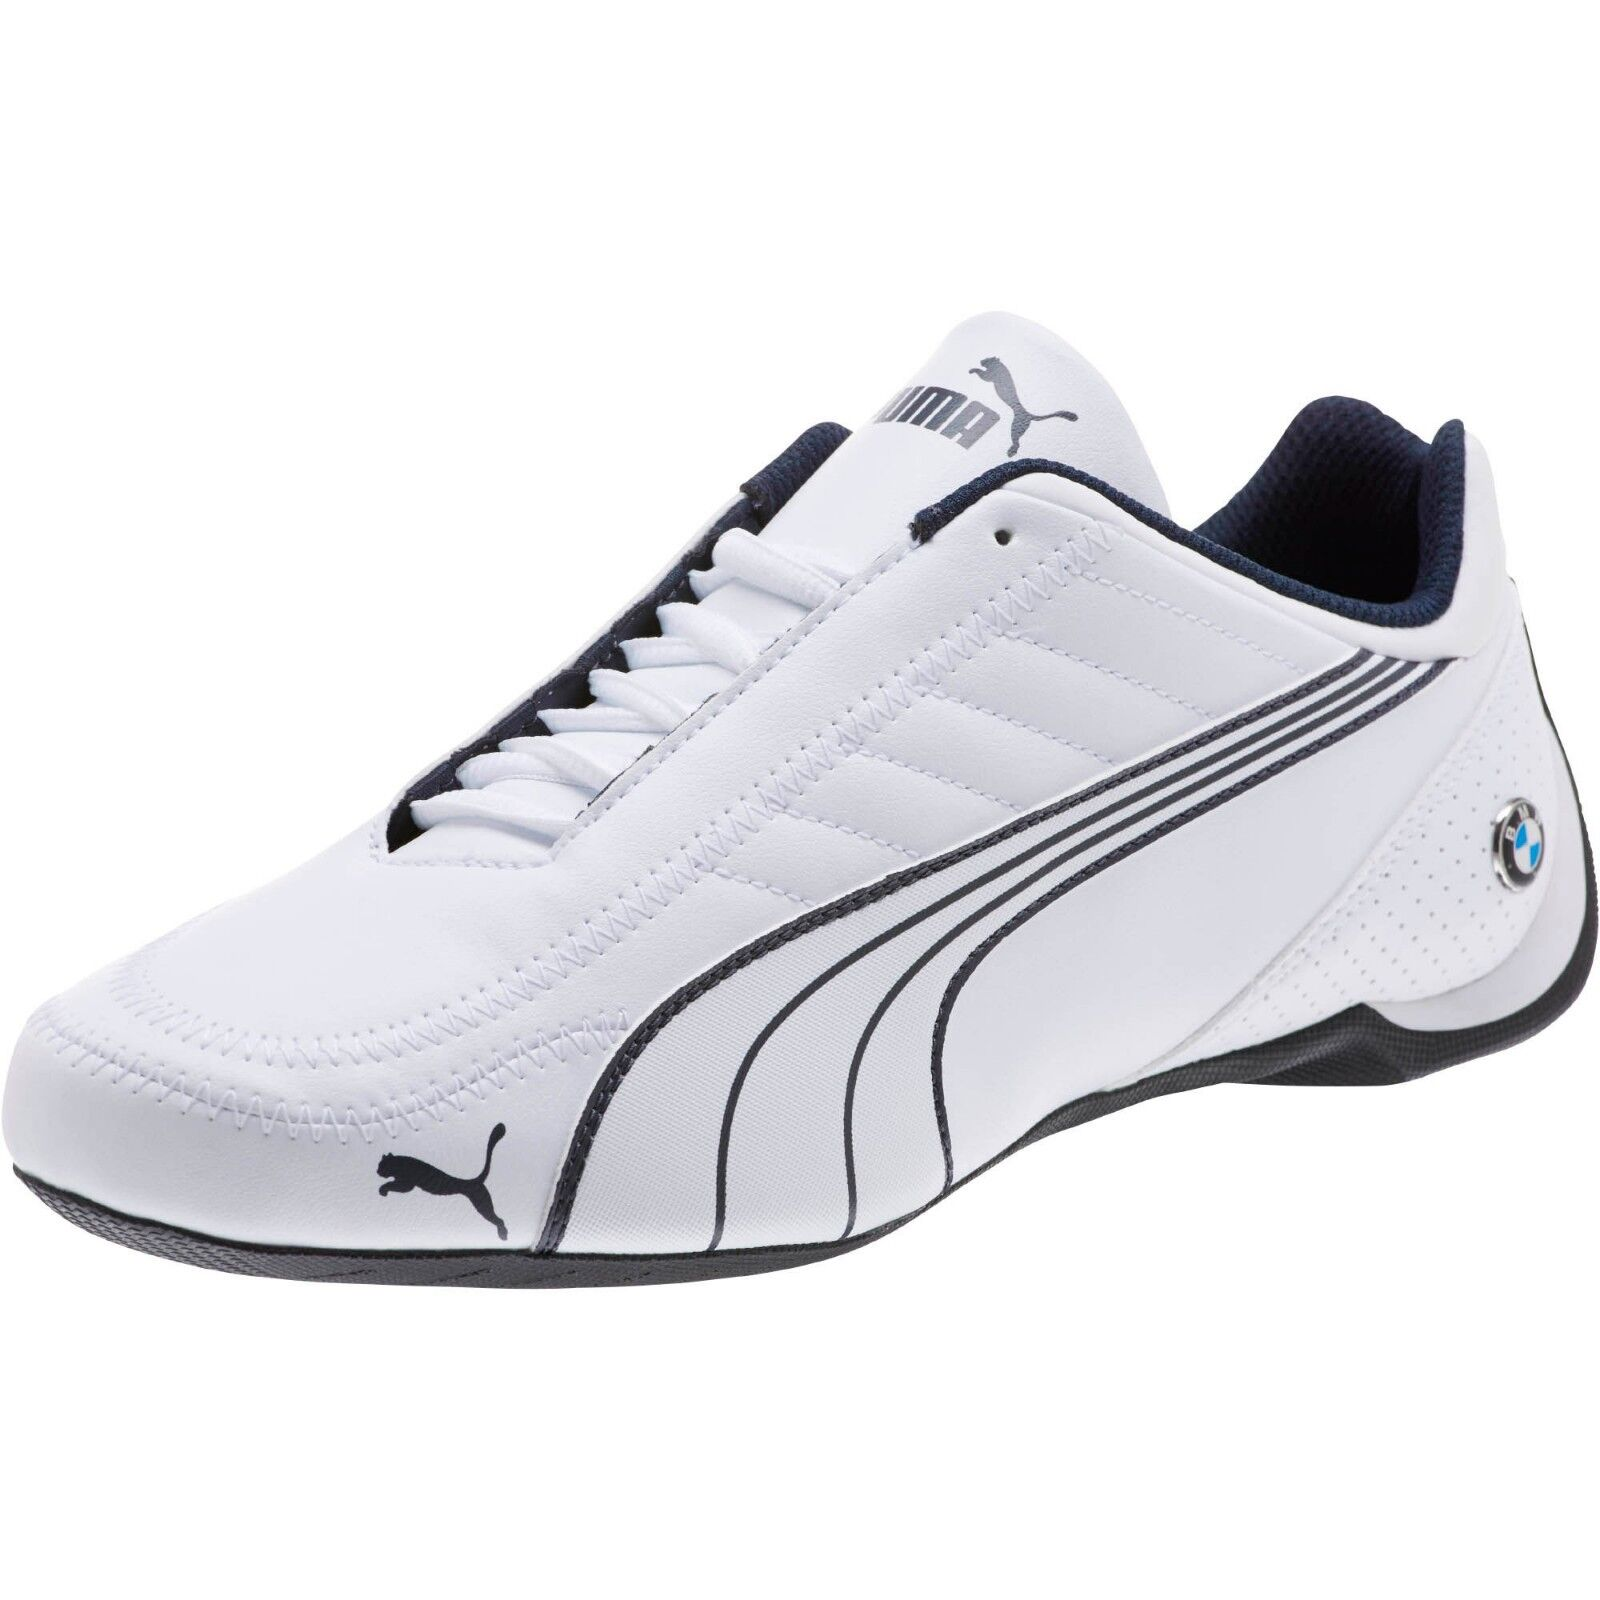 New men's Puma Future Kart Cat BMW Motorsport shoes white blue black 306216-02  1